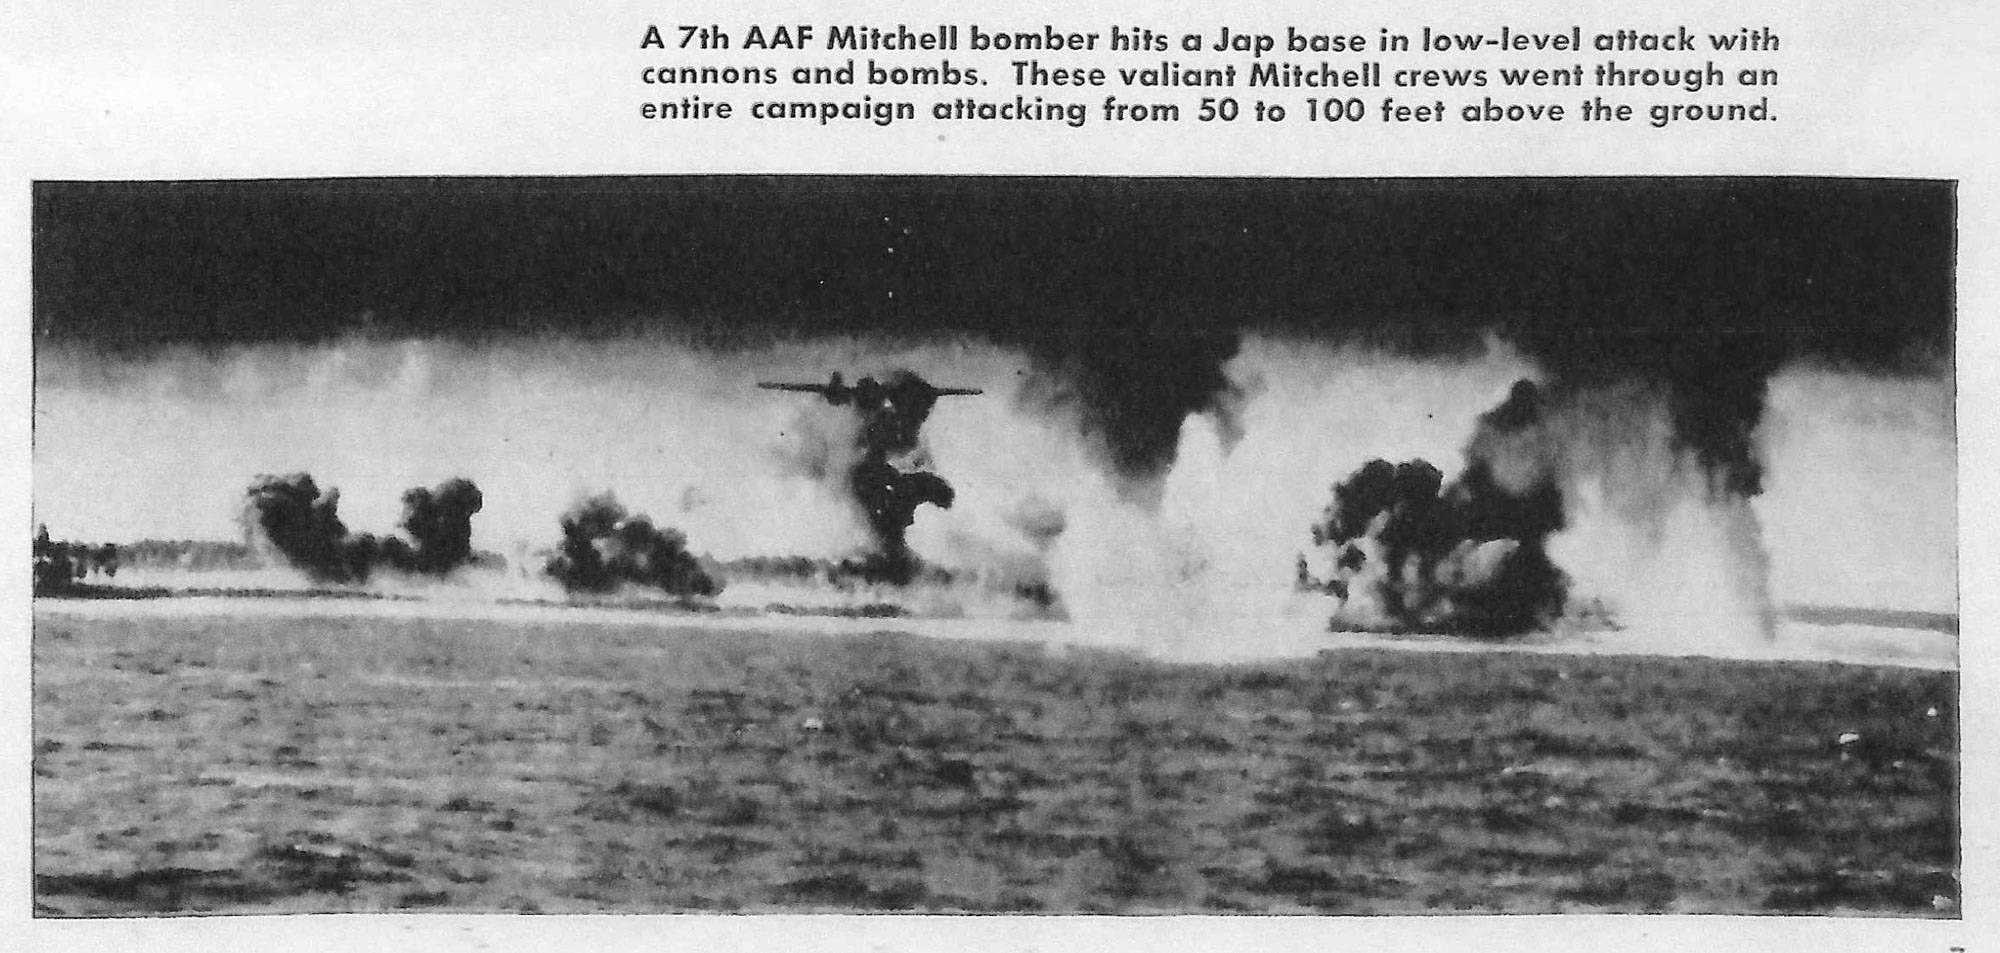 A 7th AAF Mitchell bomber hits a Japanese base in low-level attack